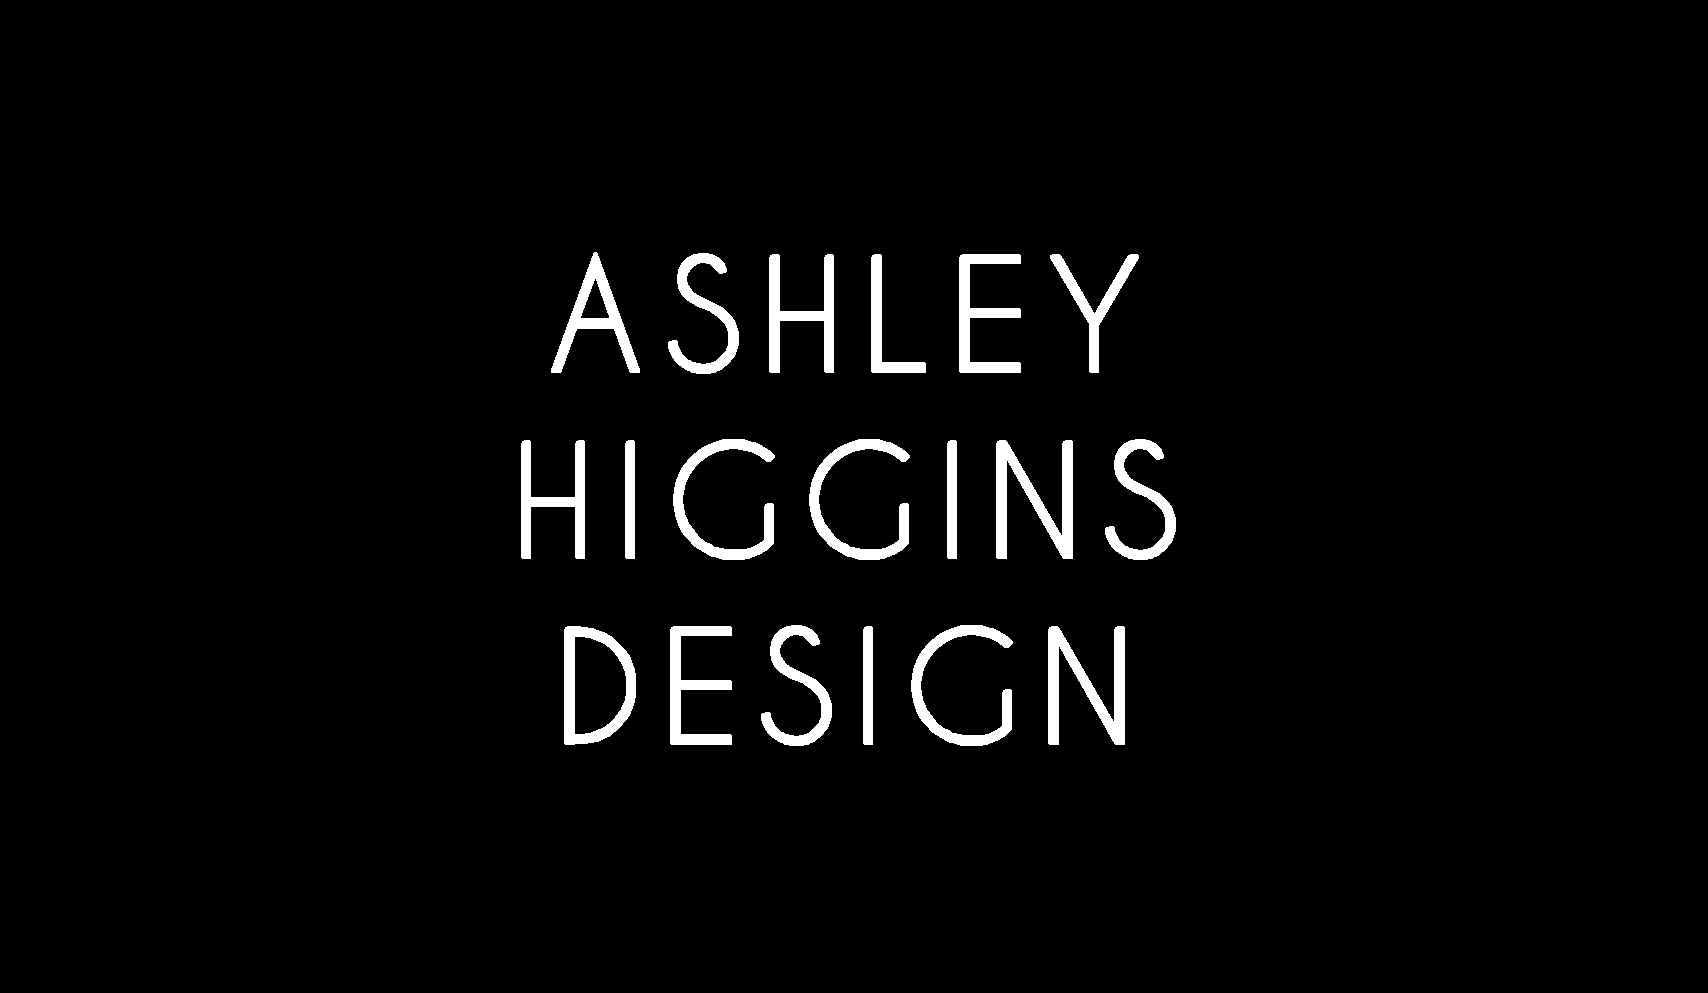 Ashley Higgins Design